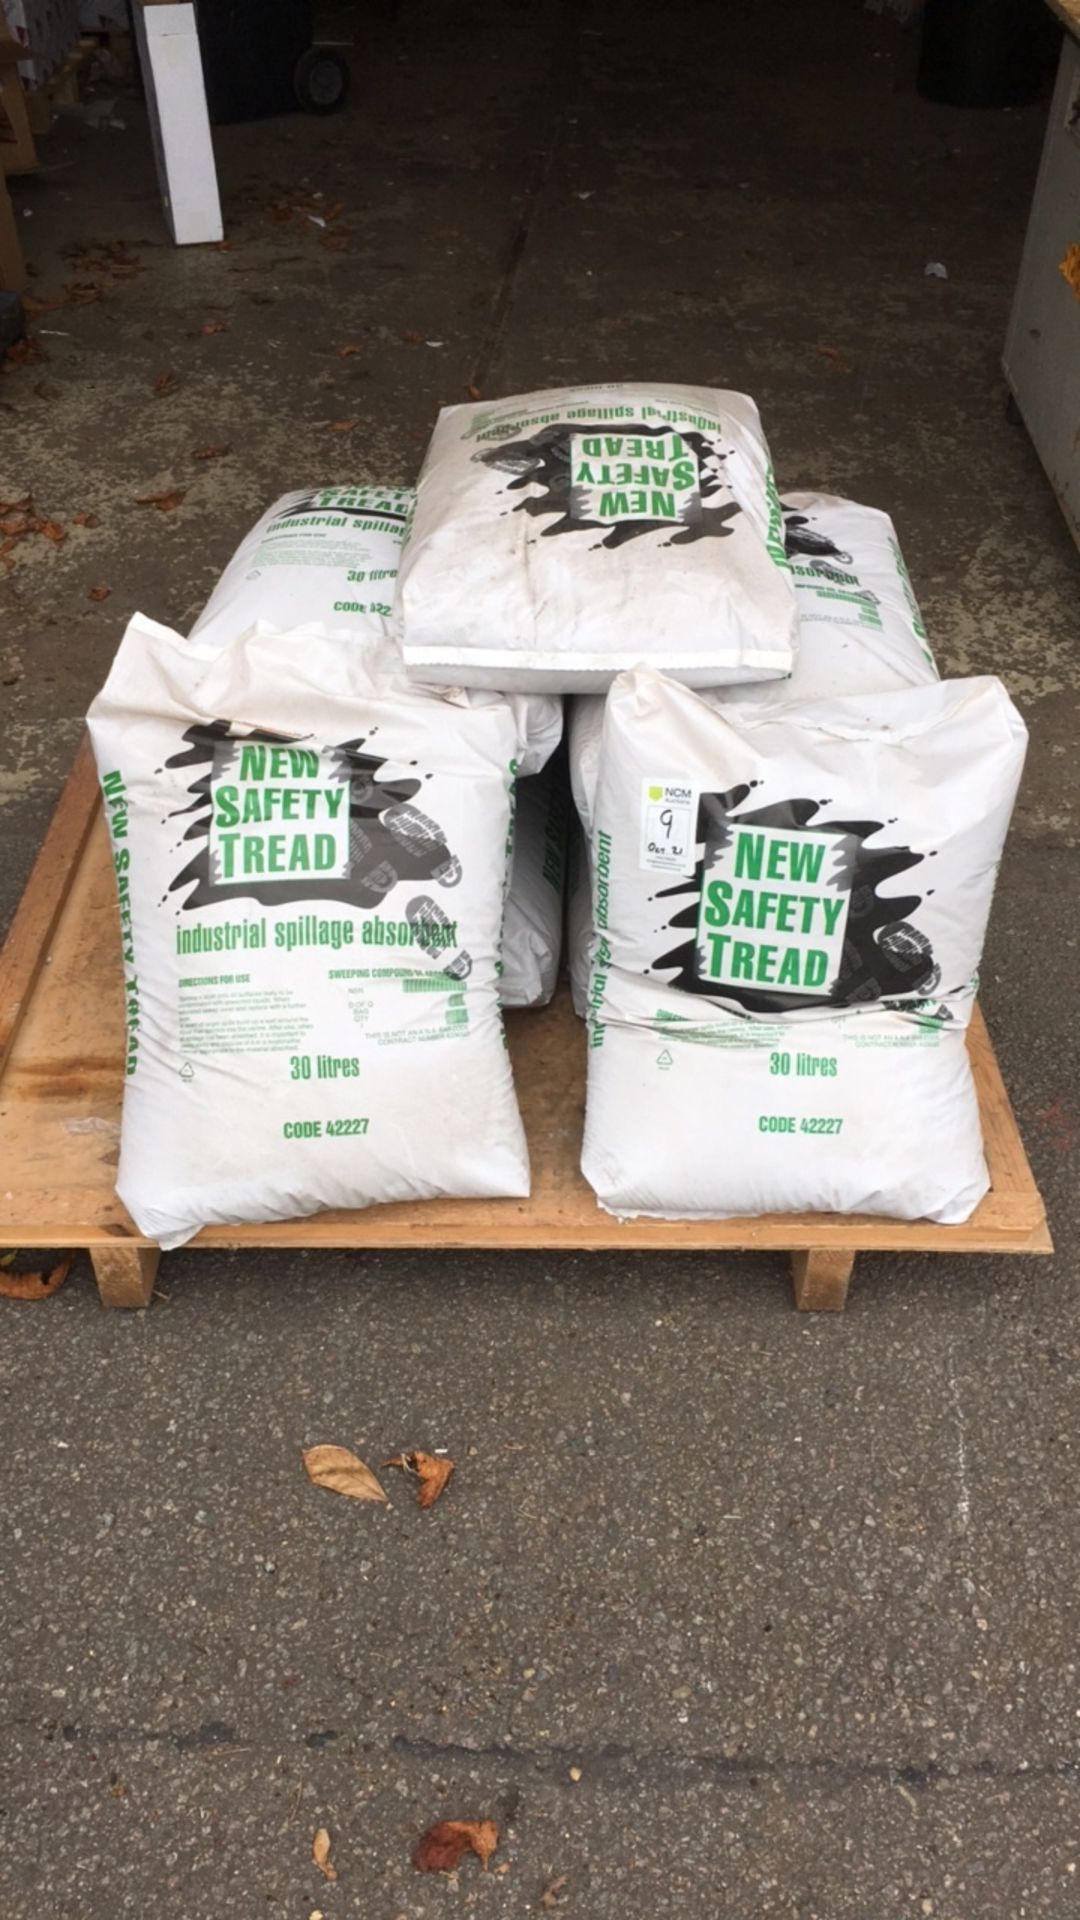 Industrial Spillage Absorbent Granules, New Safety Tread